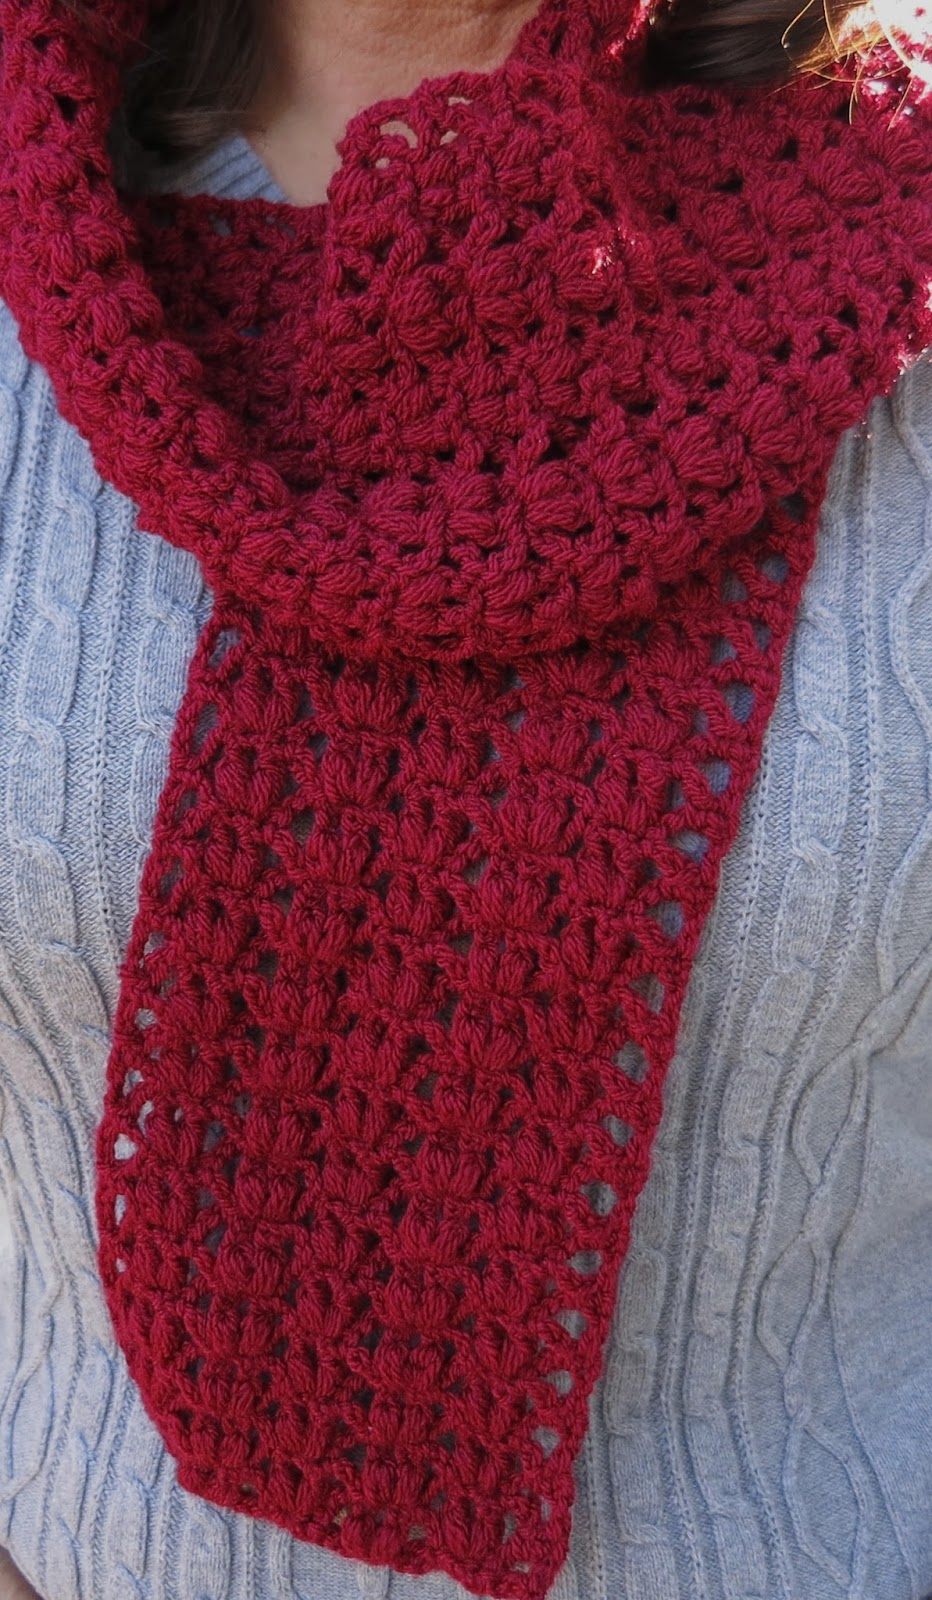 Crochet Zig Zag Scarf : Das Crochet Connection: Zig Zag Heart Scarf